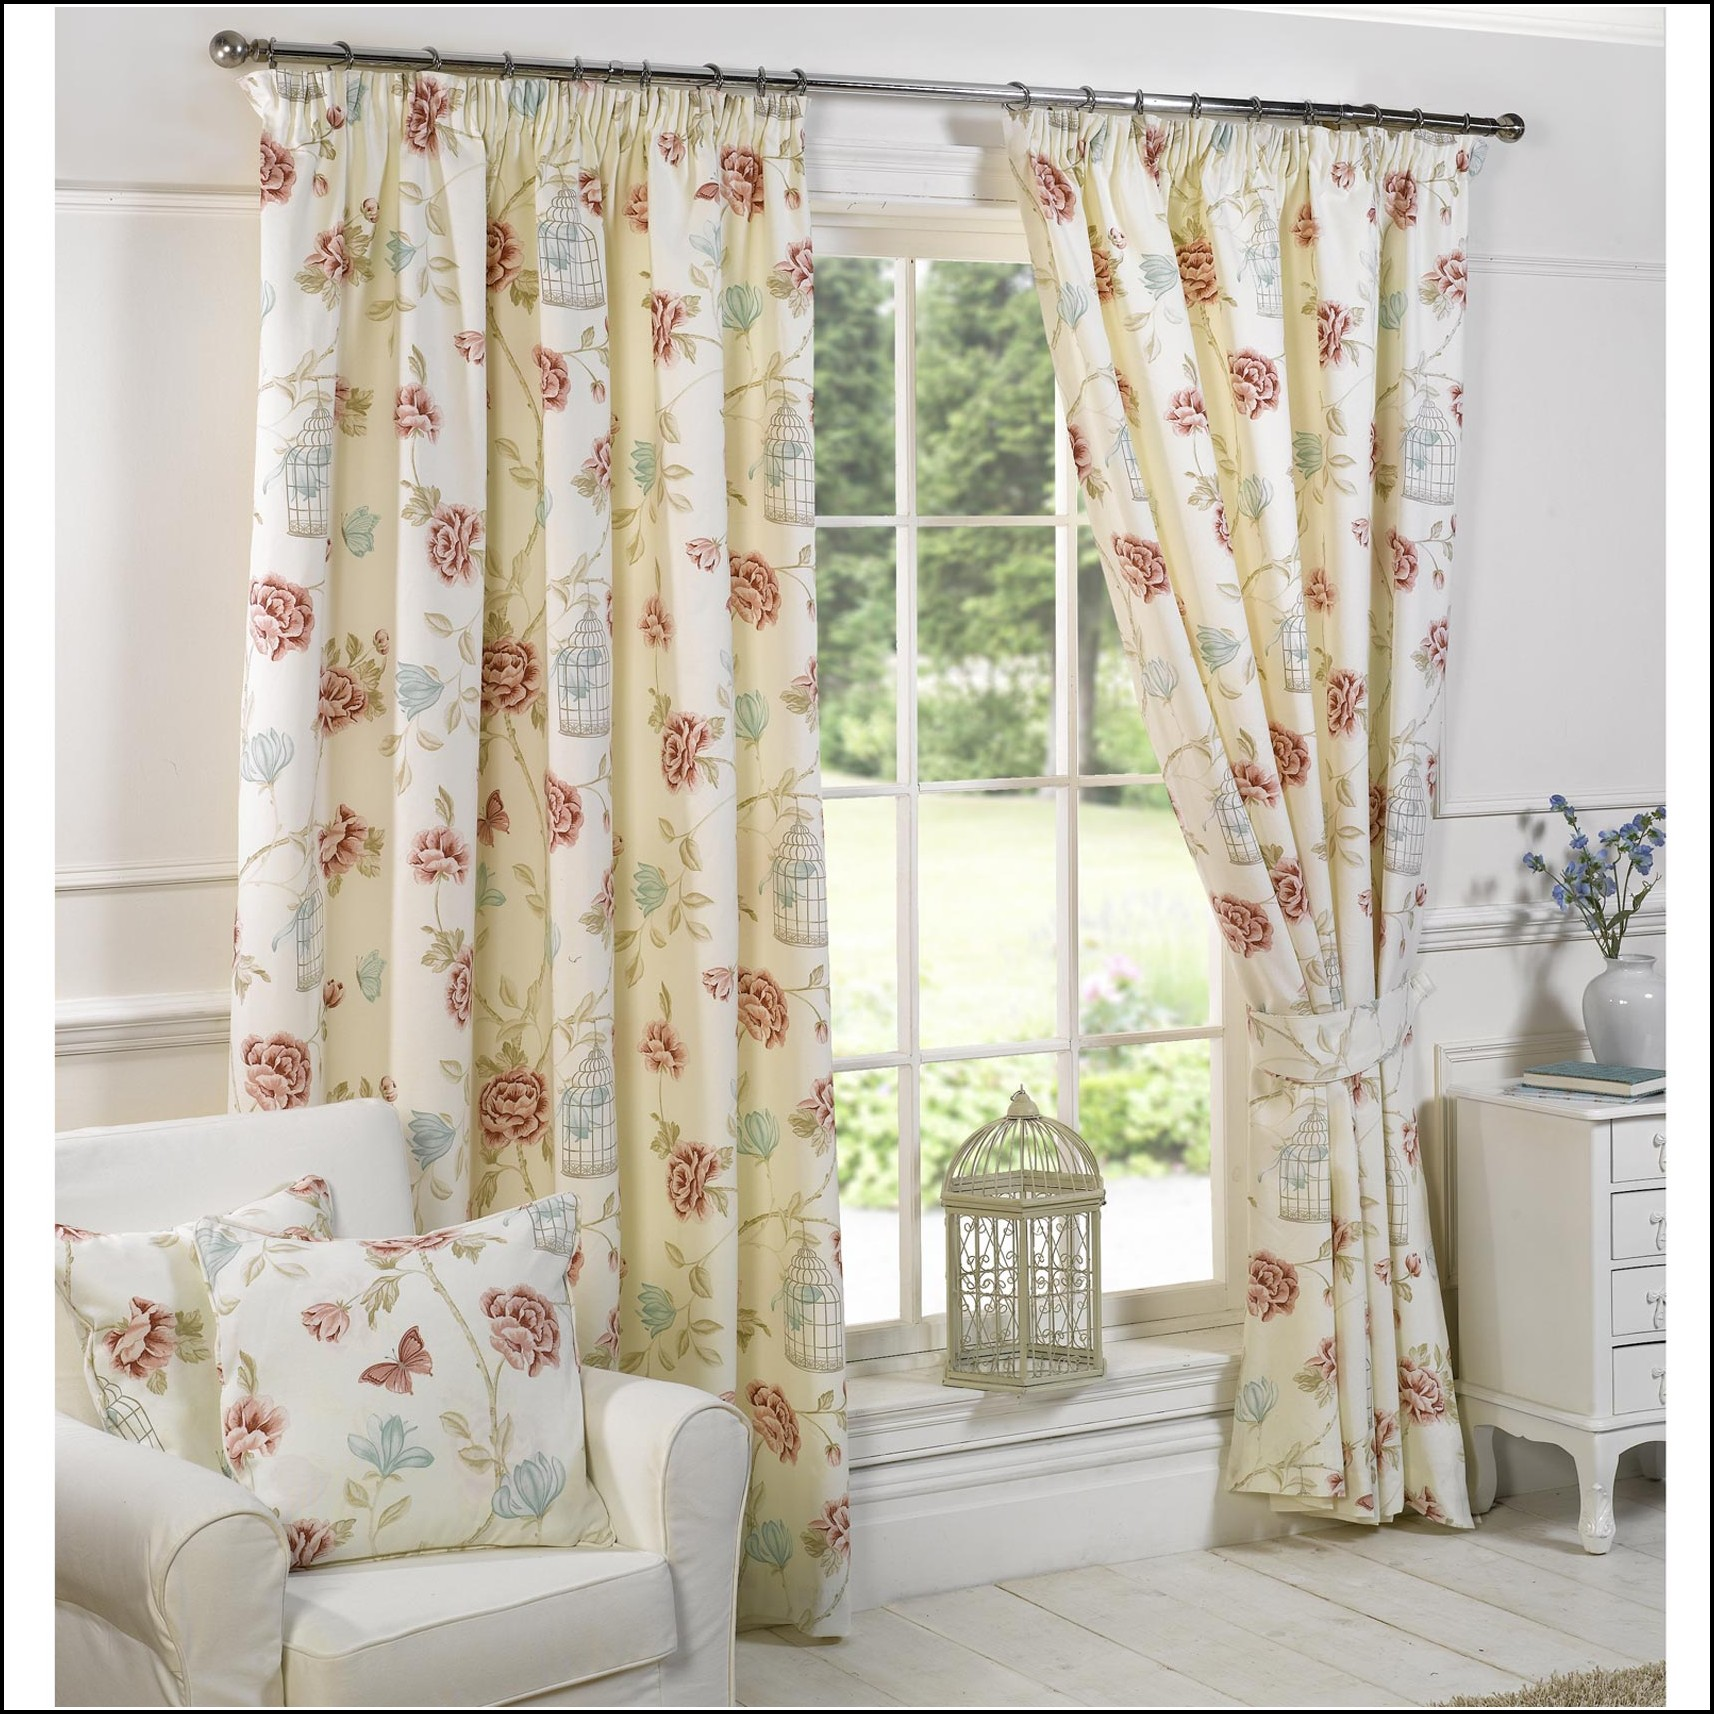 Best Place For Curtains In Bangalore